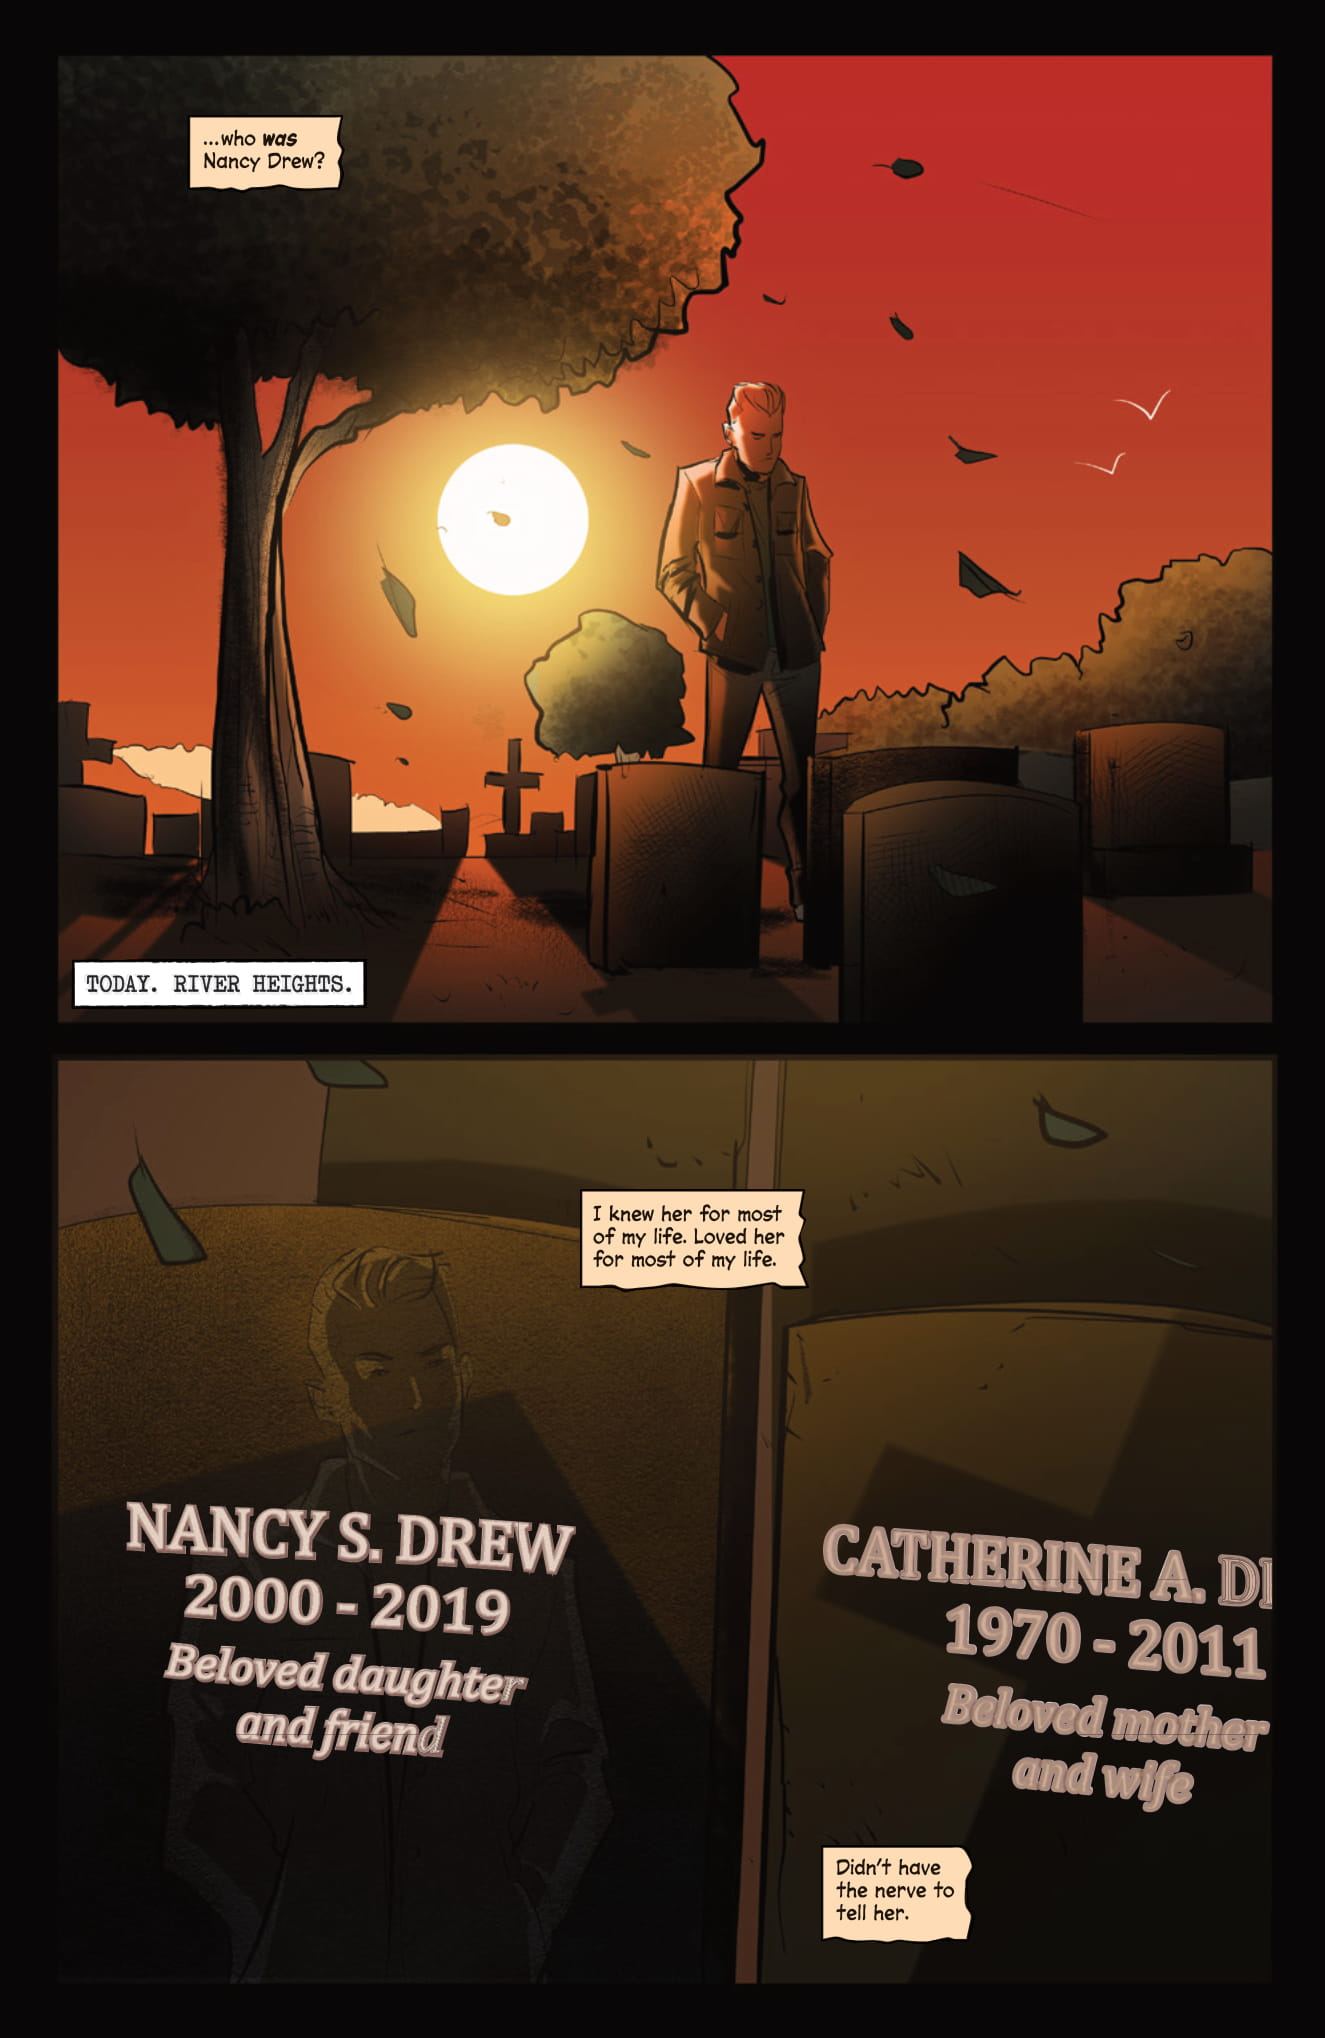 Death of Nancy Drew